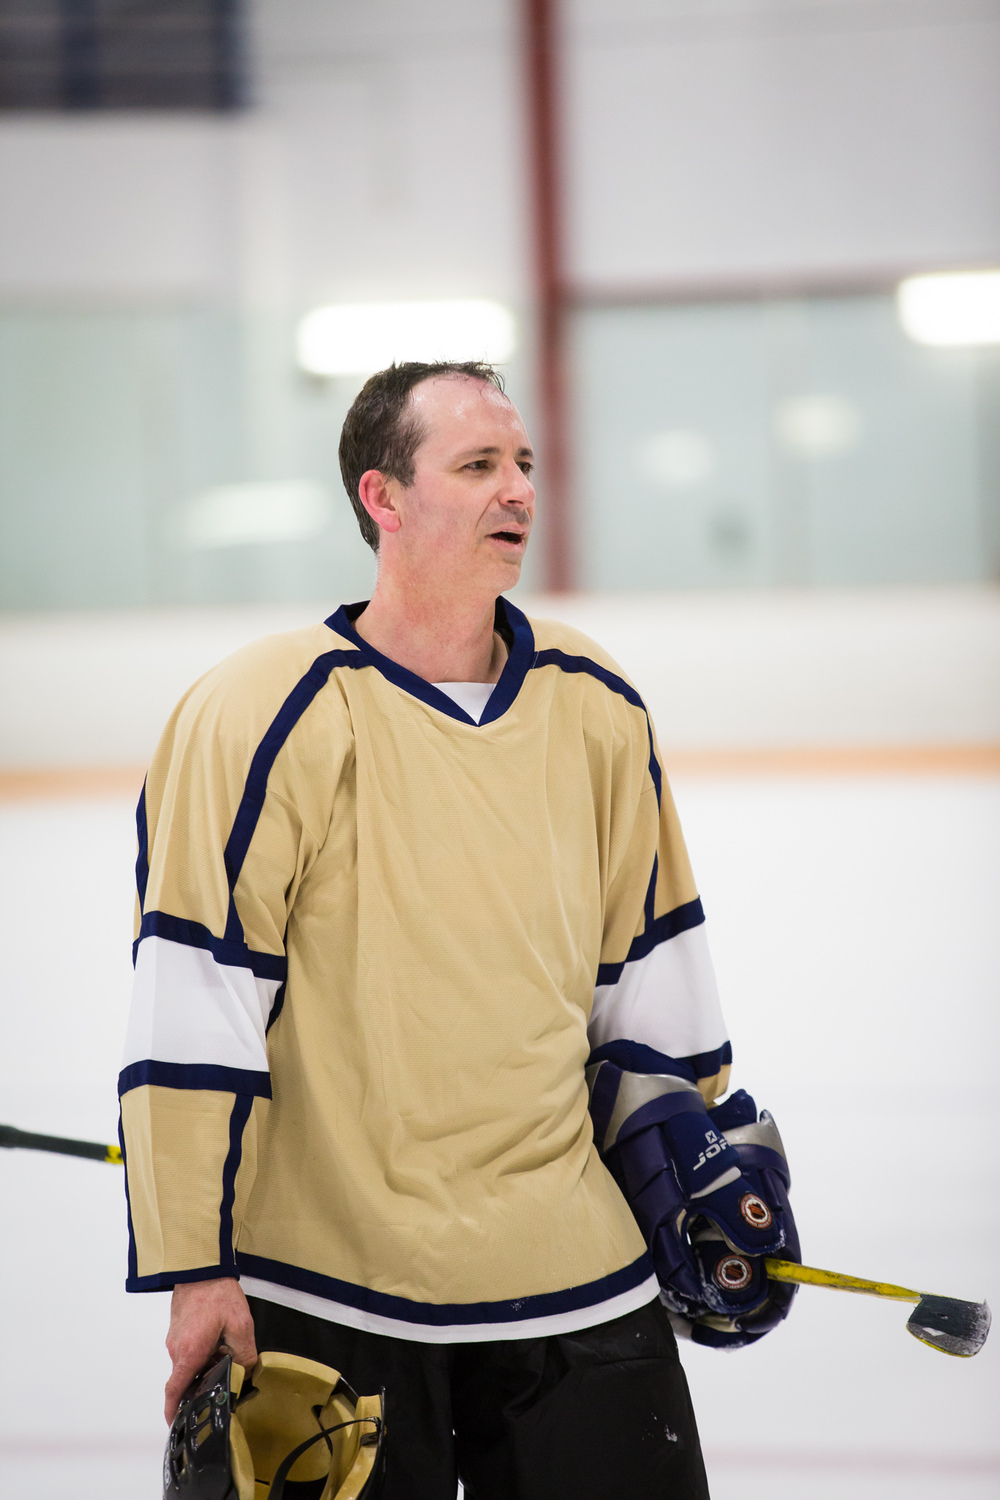 GrenfellCharityHockeyGame2016-April5-2016-66.jpg